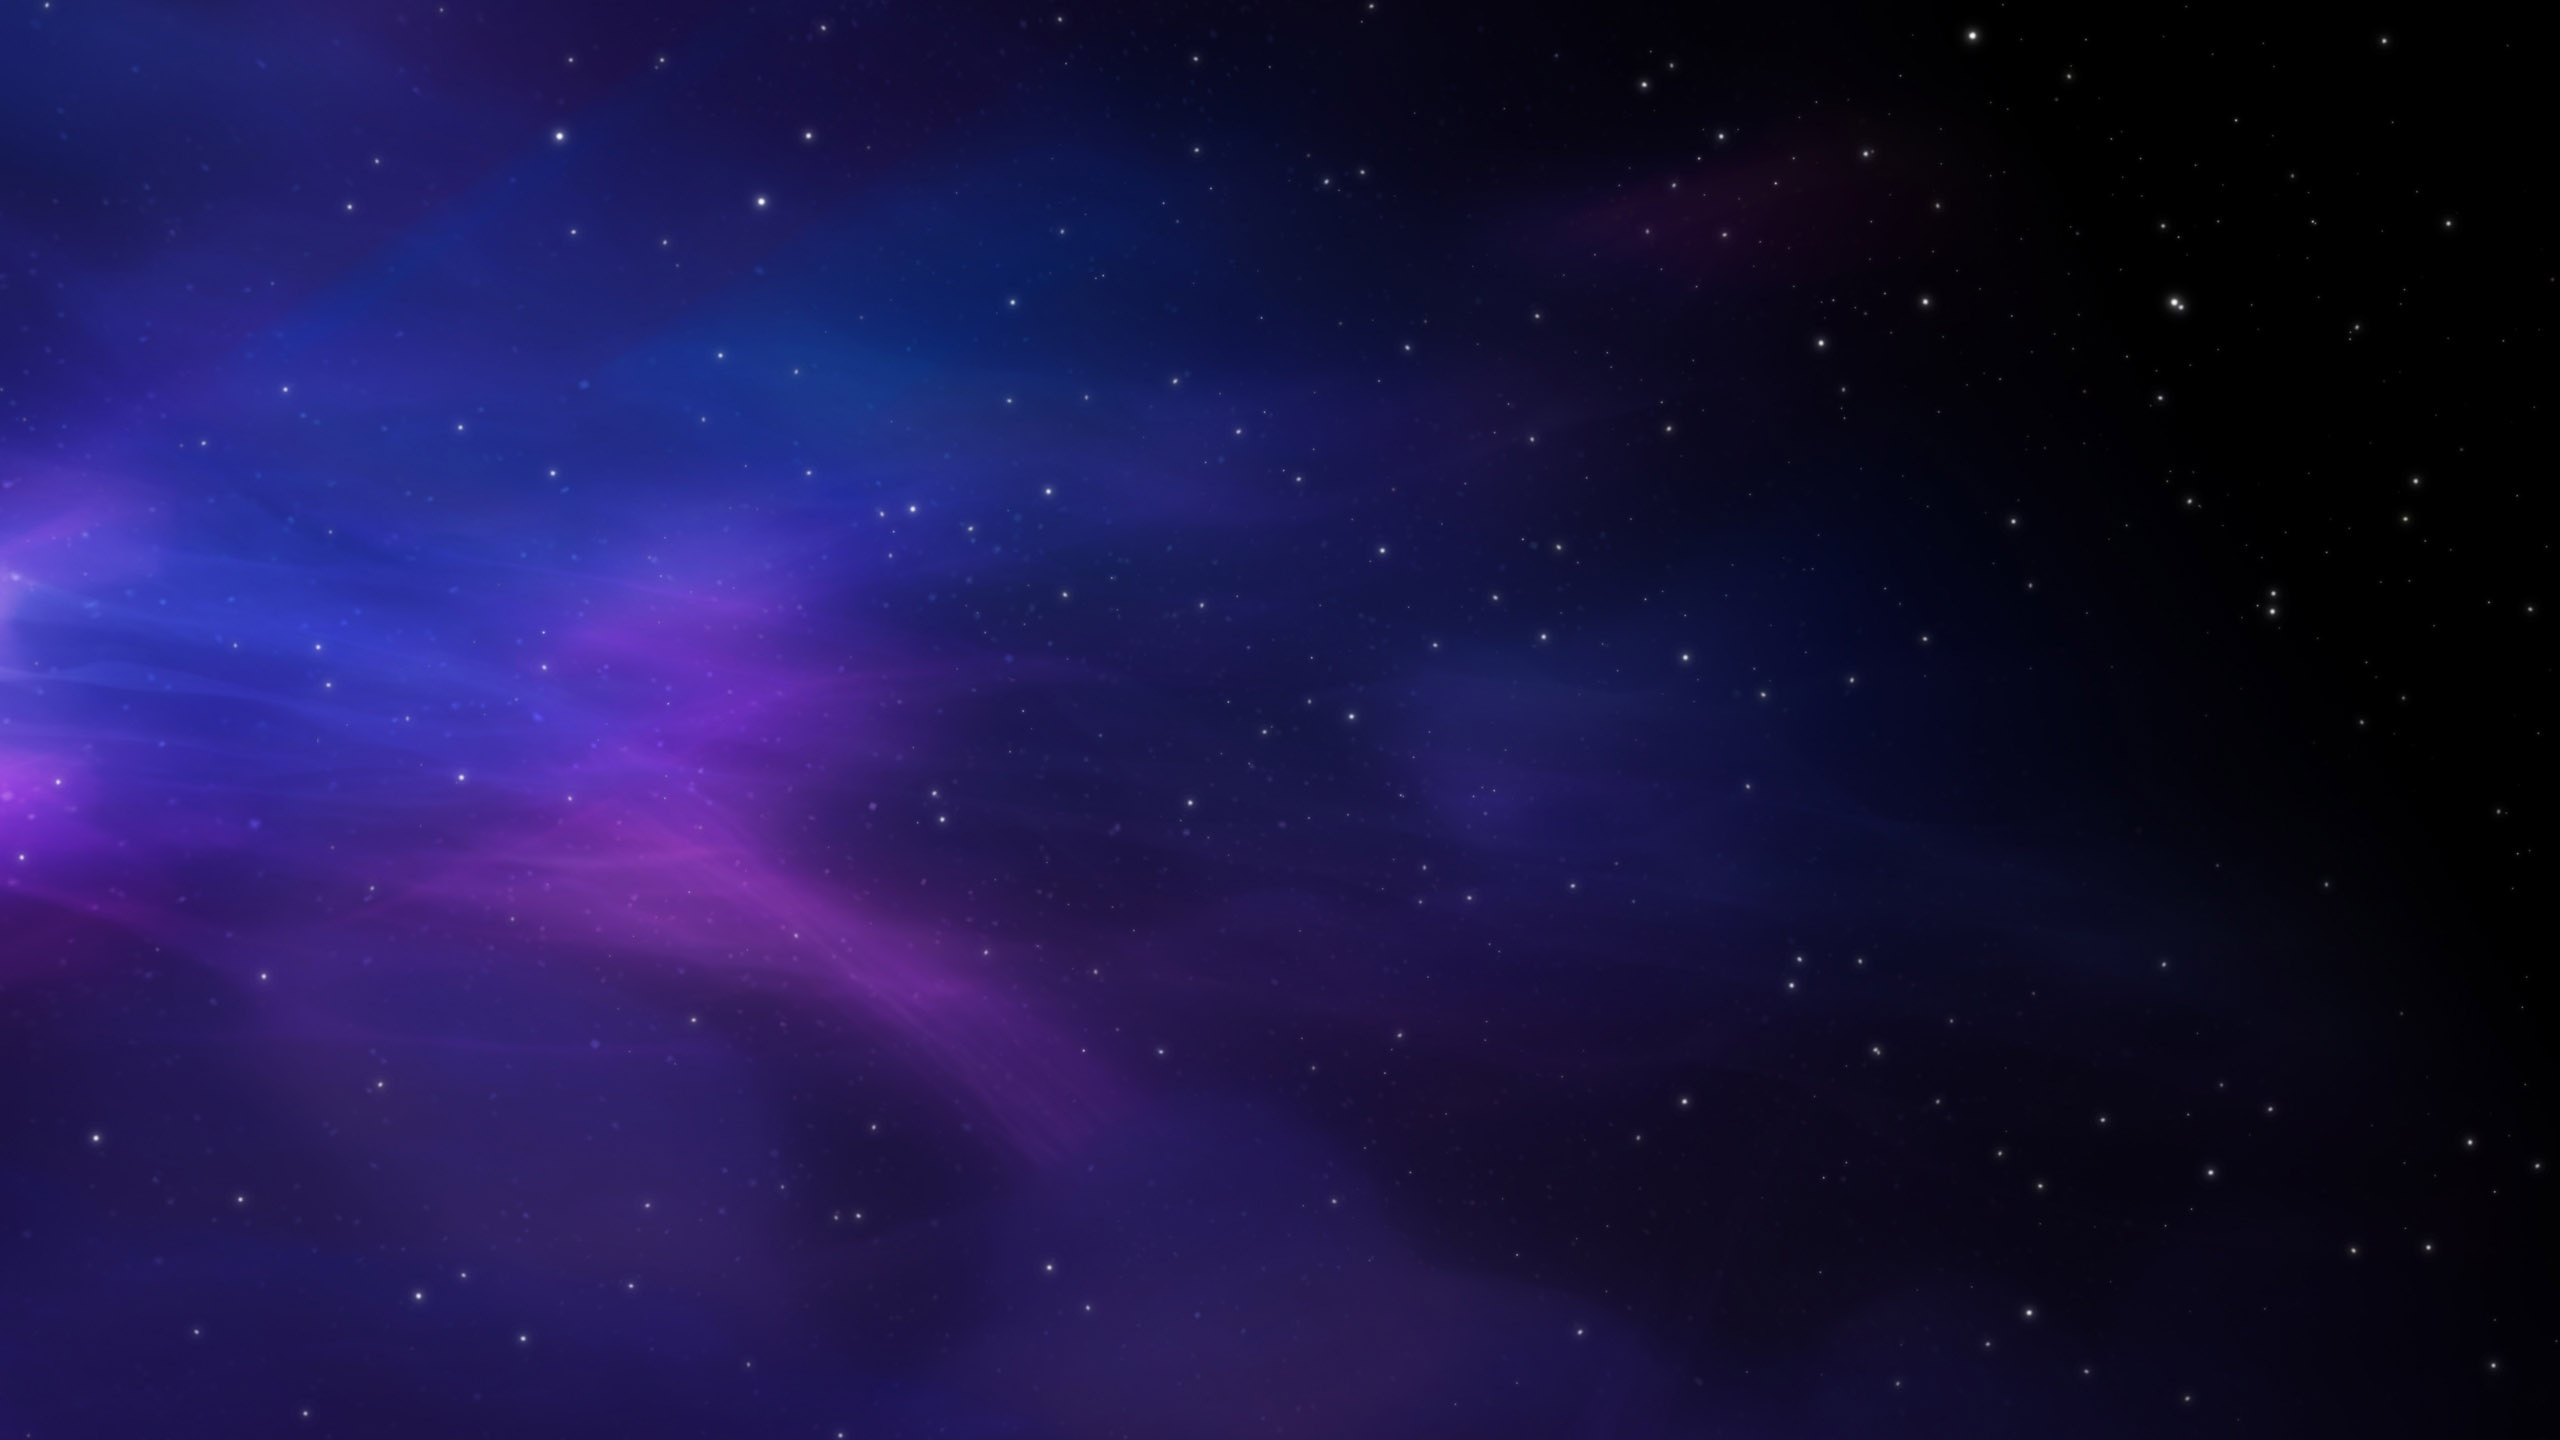 2560x1440 Galaxy Tumblr Large Colorful Desktop Pc And Mac